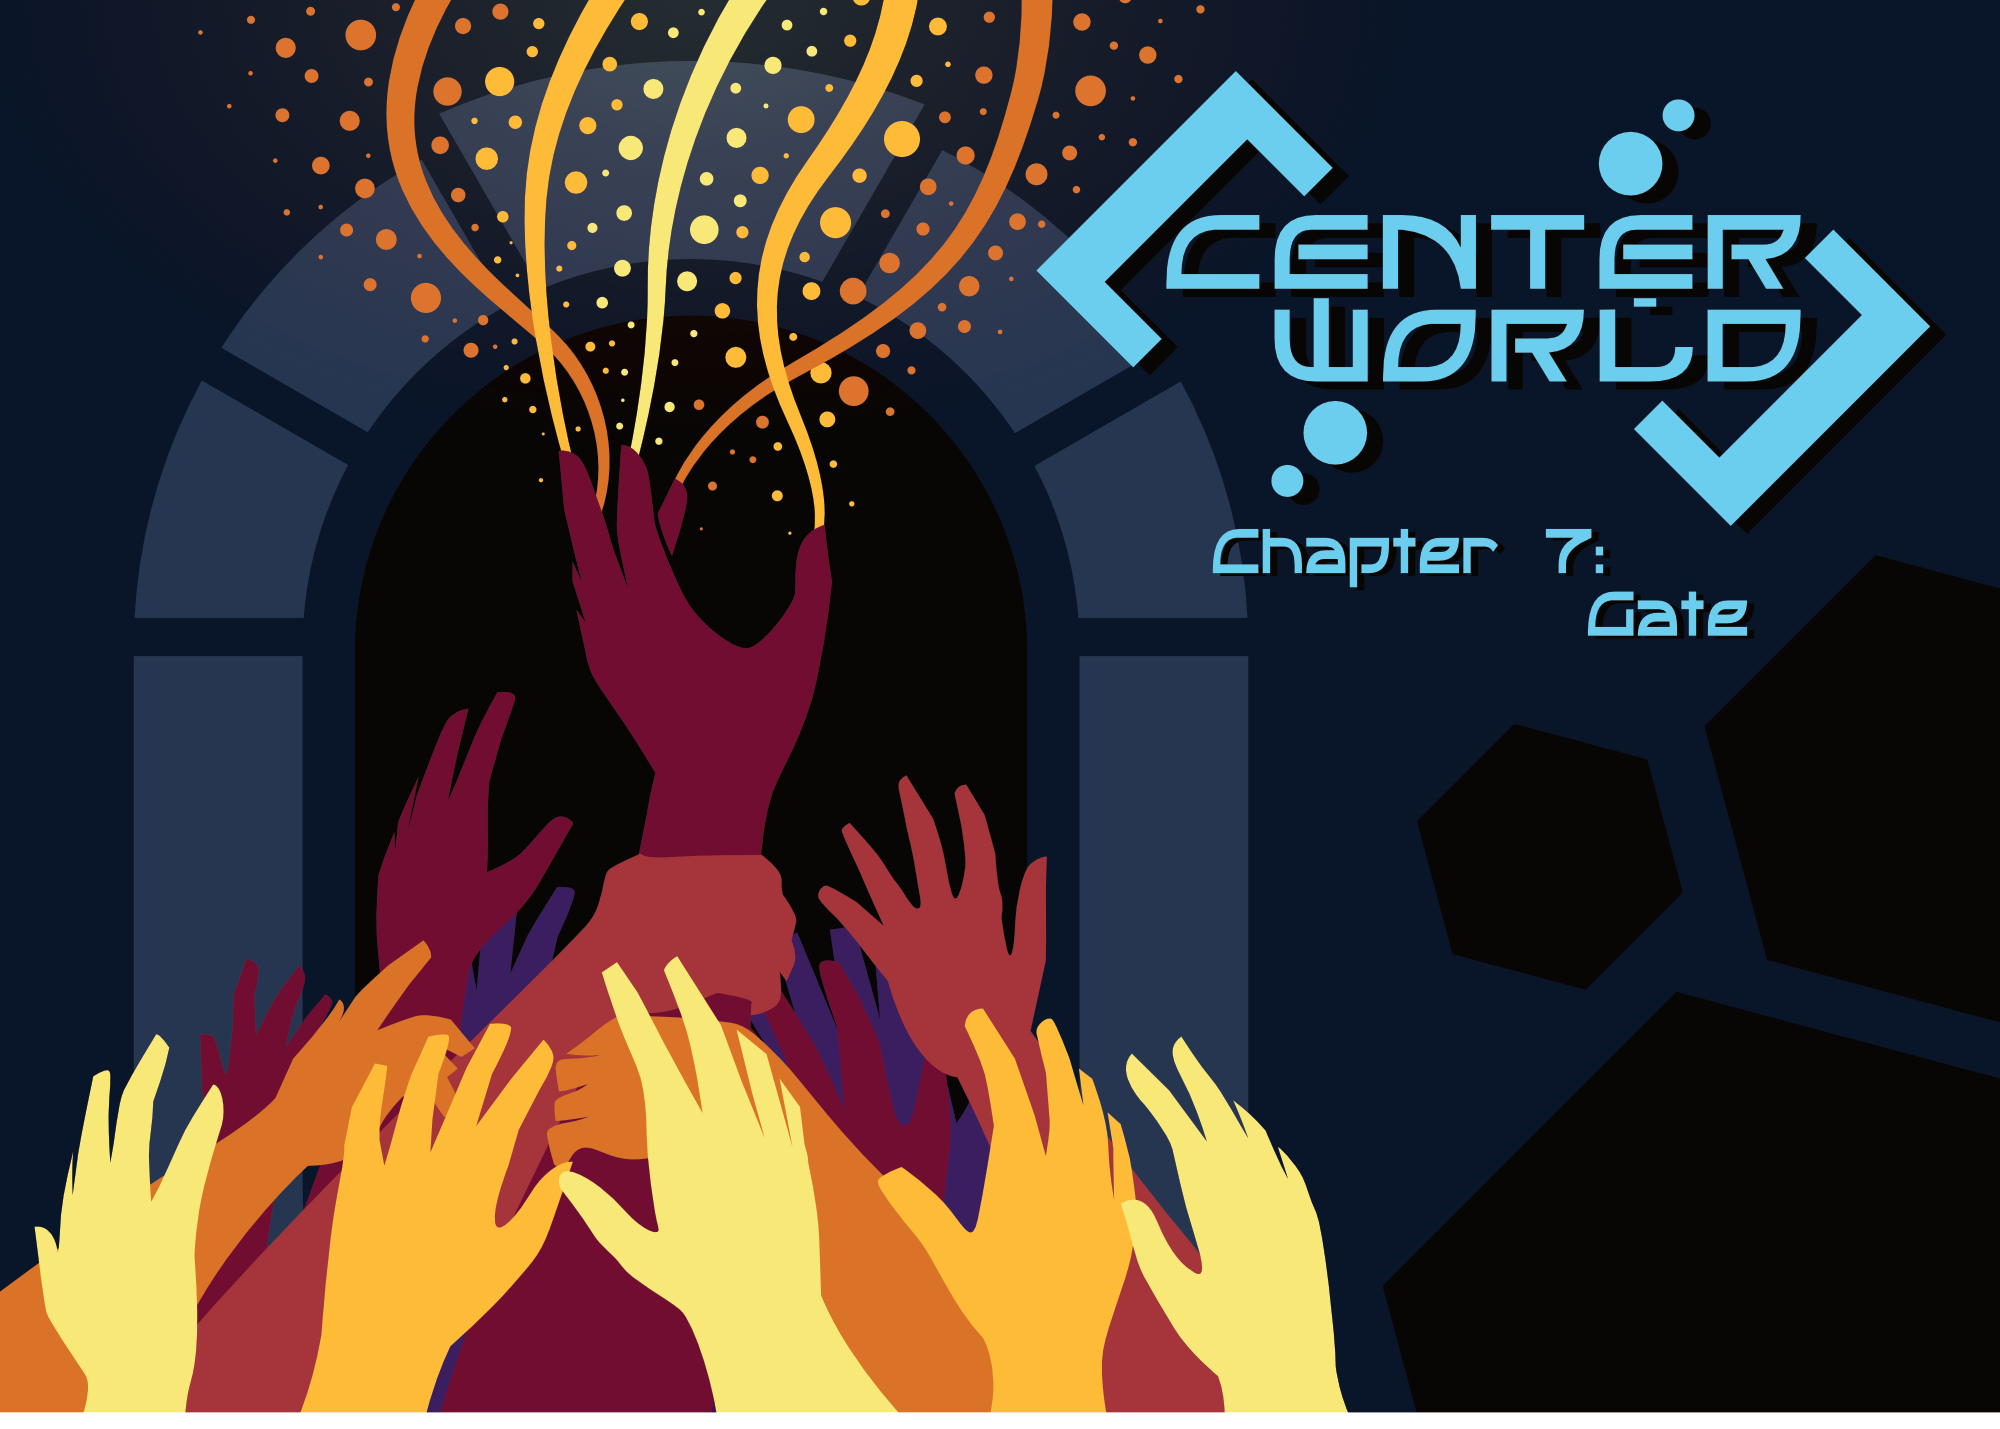 Center World 7.0